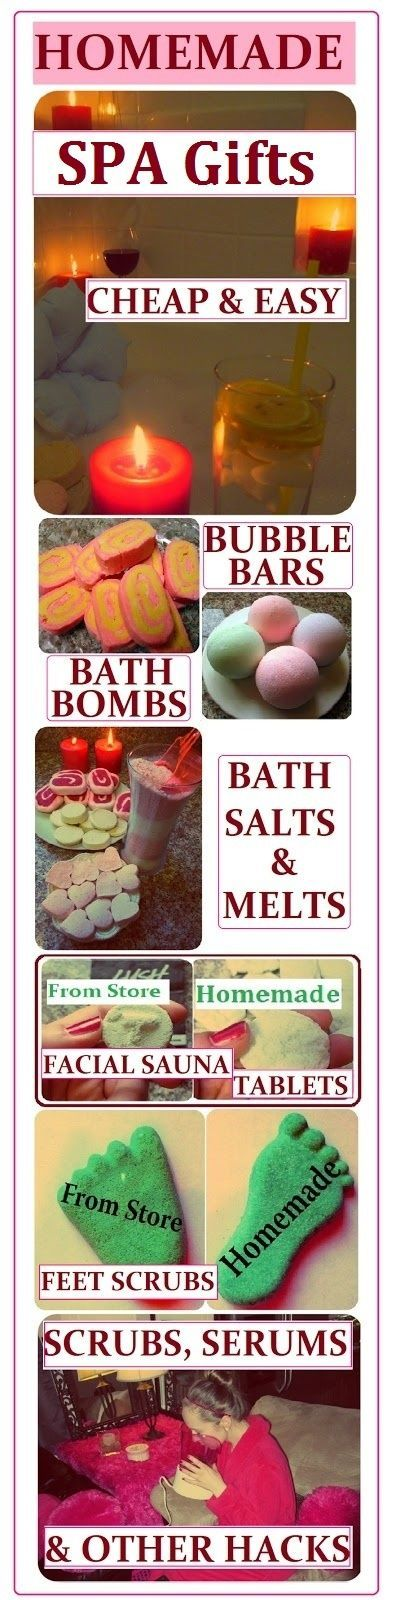 Spa Product Recipes: Bubble Bars, Bath Bombs, Salts, Melts, Scrubs, Serums & Lotions. How to Make them CHEAP, EASY & QUICK Homemade Gift Ideas for Saint Valentine's Day, Birthday, Mother's Day or Christmas